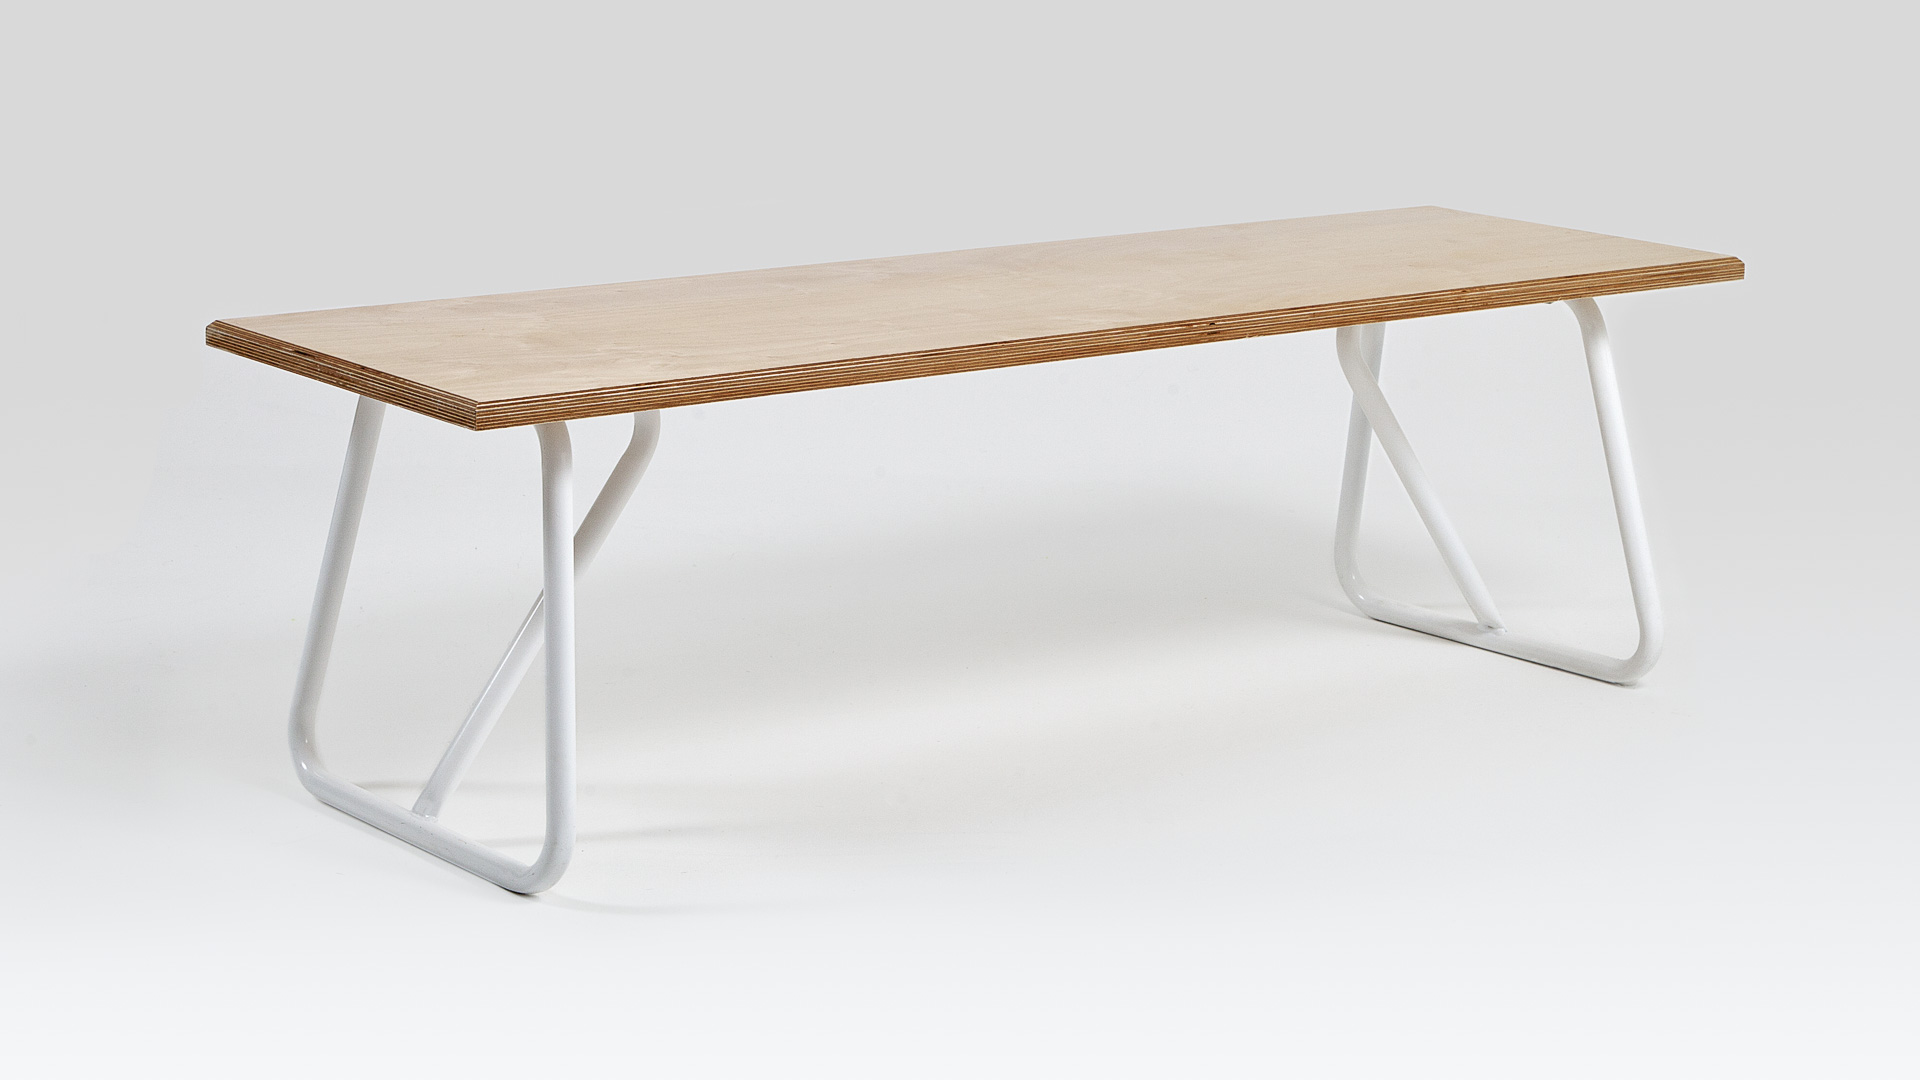 Bench Seats Benches Indoor Benches Table And Bench Set